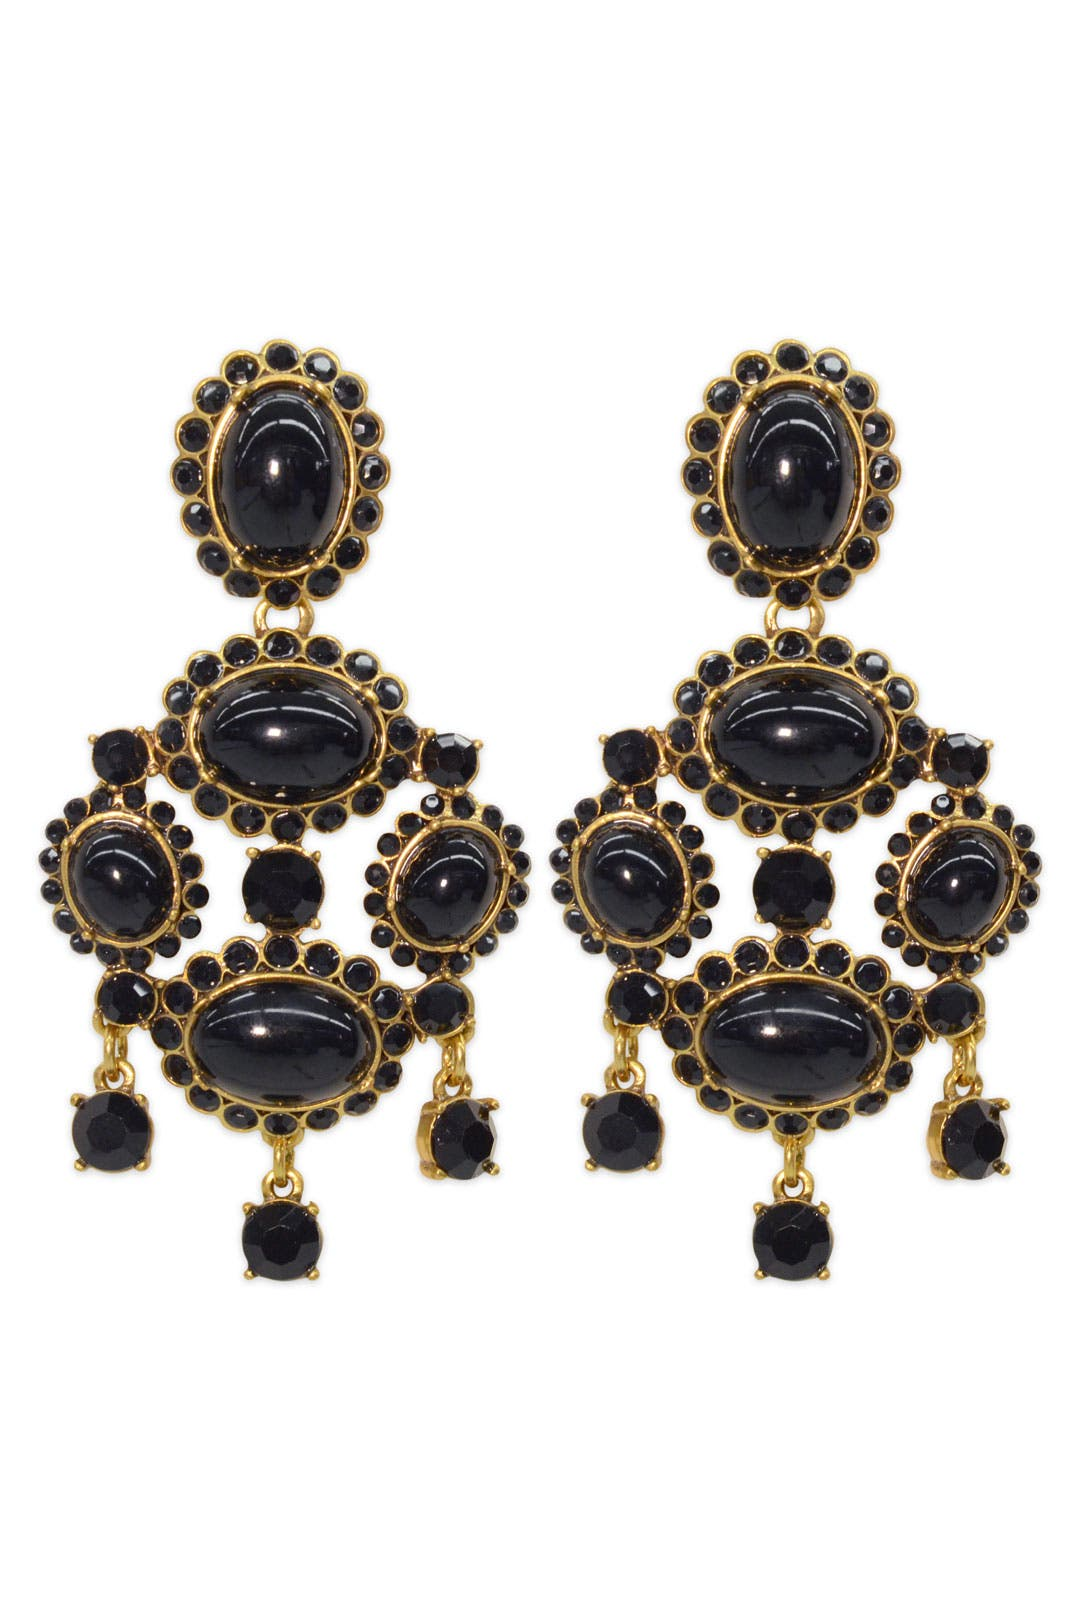 Black Ornate Earrings by Oscar de la Renta